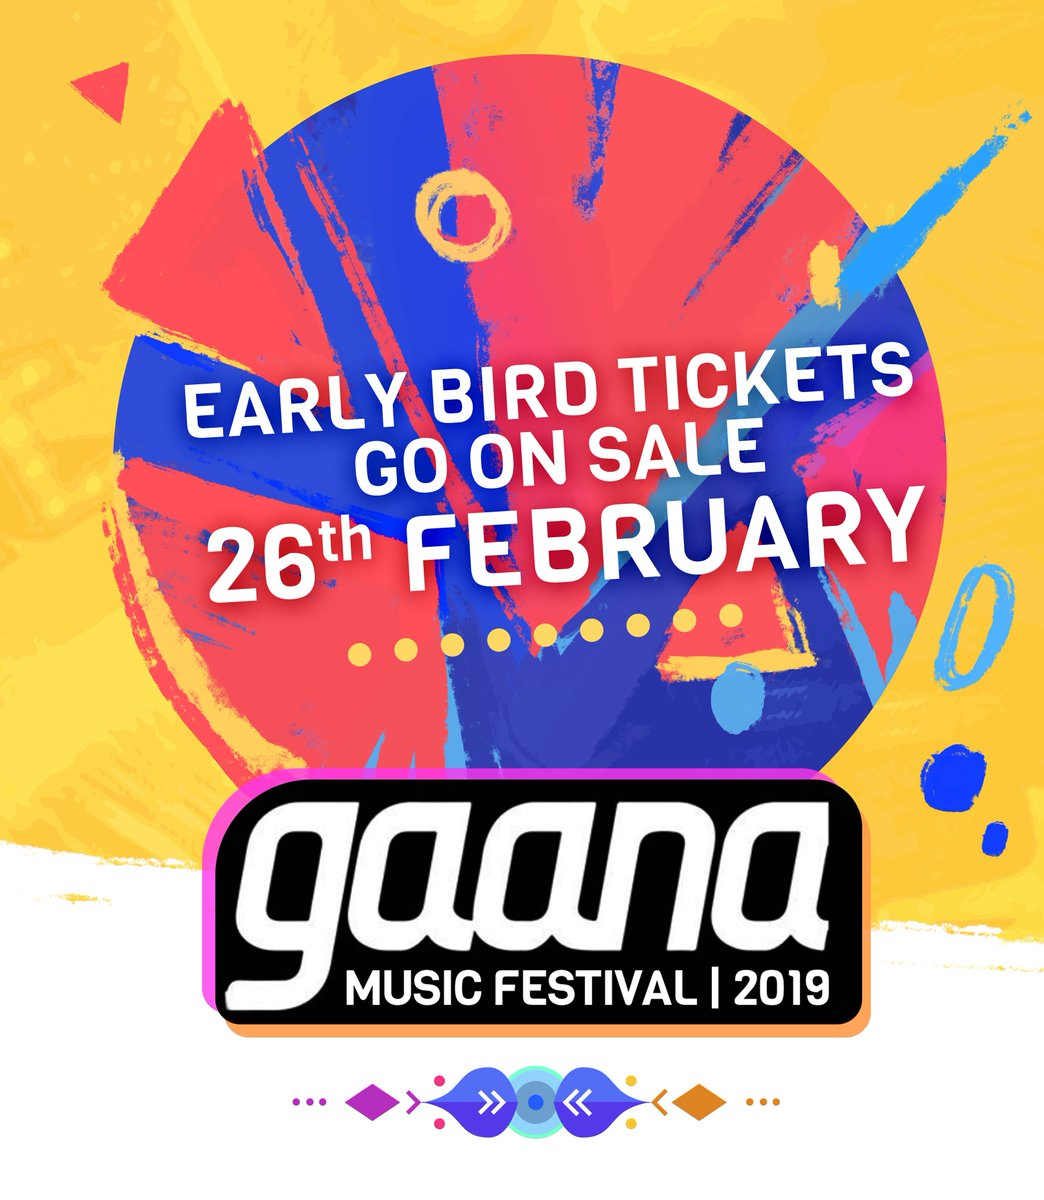 The largest Indian music festival in North America is returning soon, and we're thrilled to announce that limited Early Bird tickets for Gaana Music Festival 2019 will be on sale, starting 26 February. Early Bird tickets are priced at 20% lower than regular pricing!